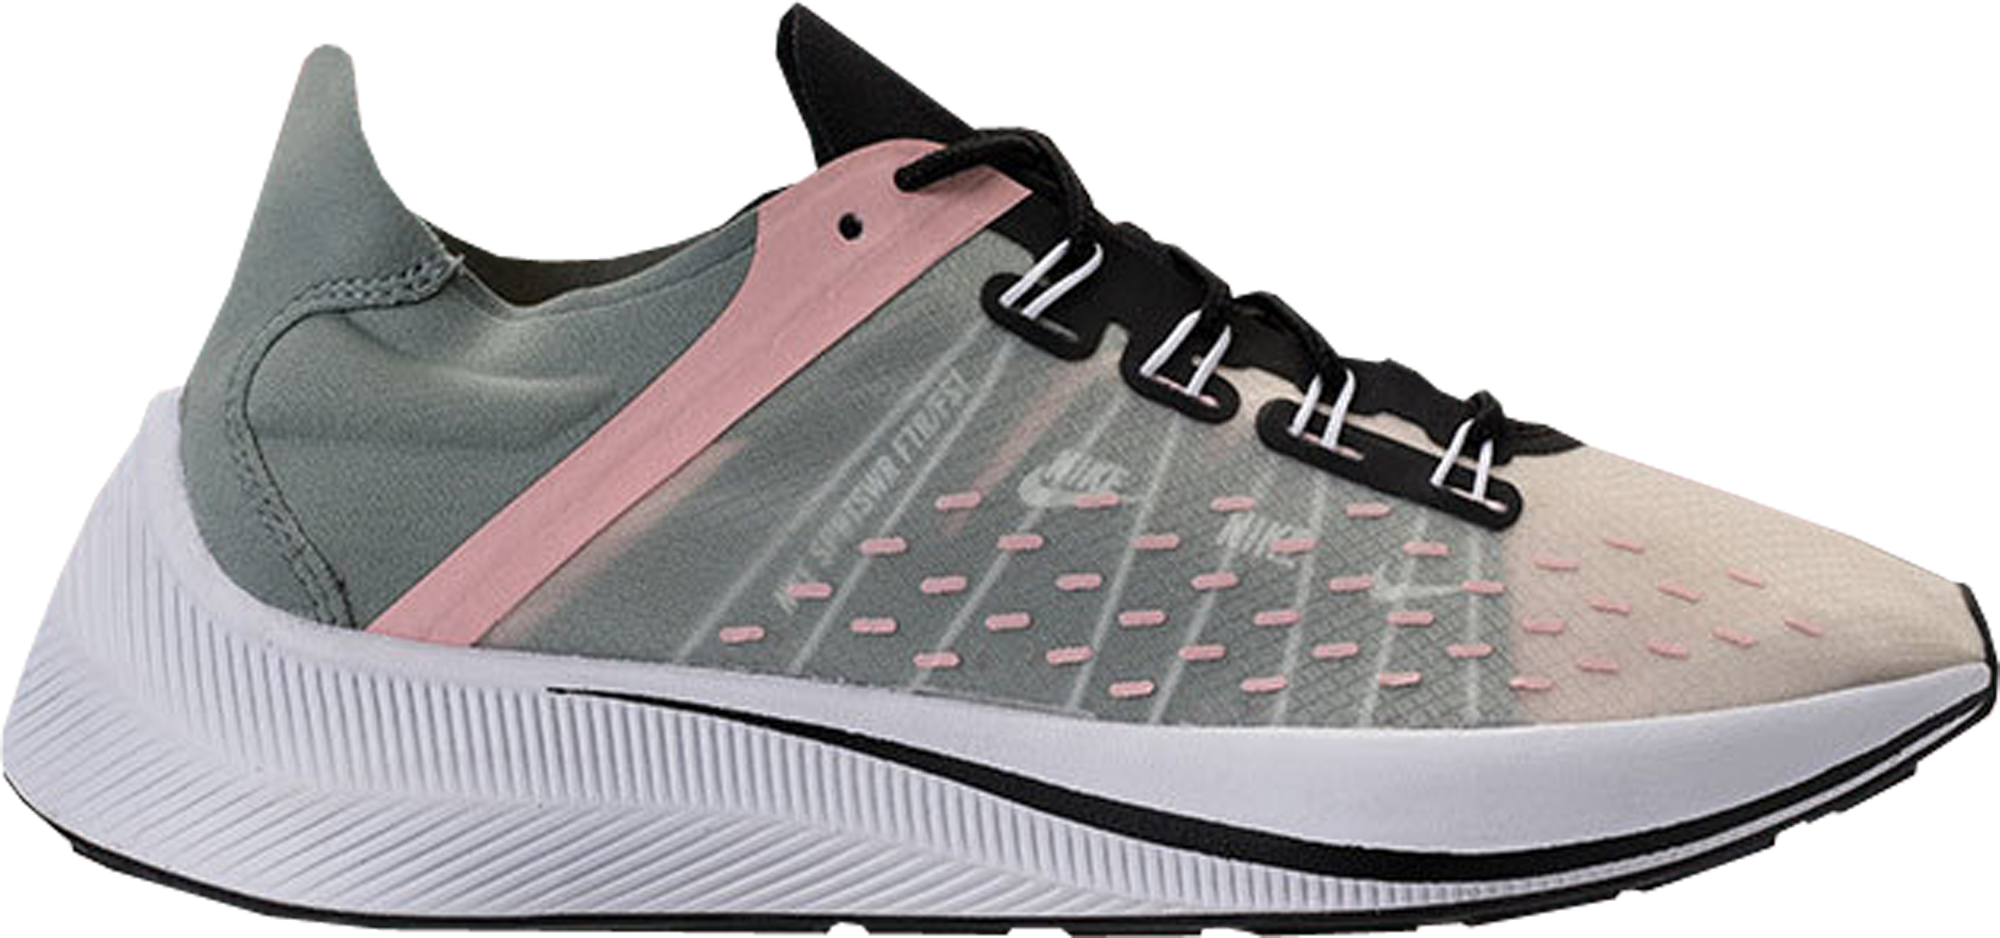 Nike EXP-X14 Mica Green Storm Pink (W)